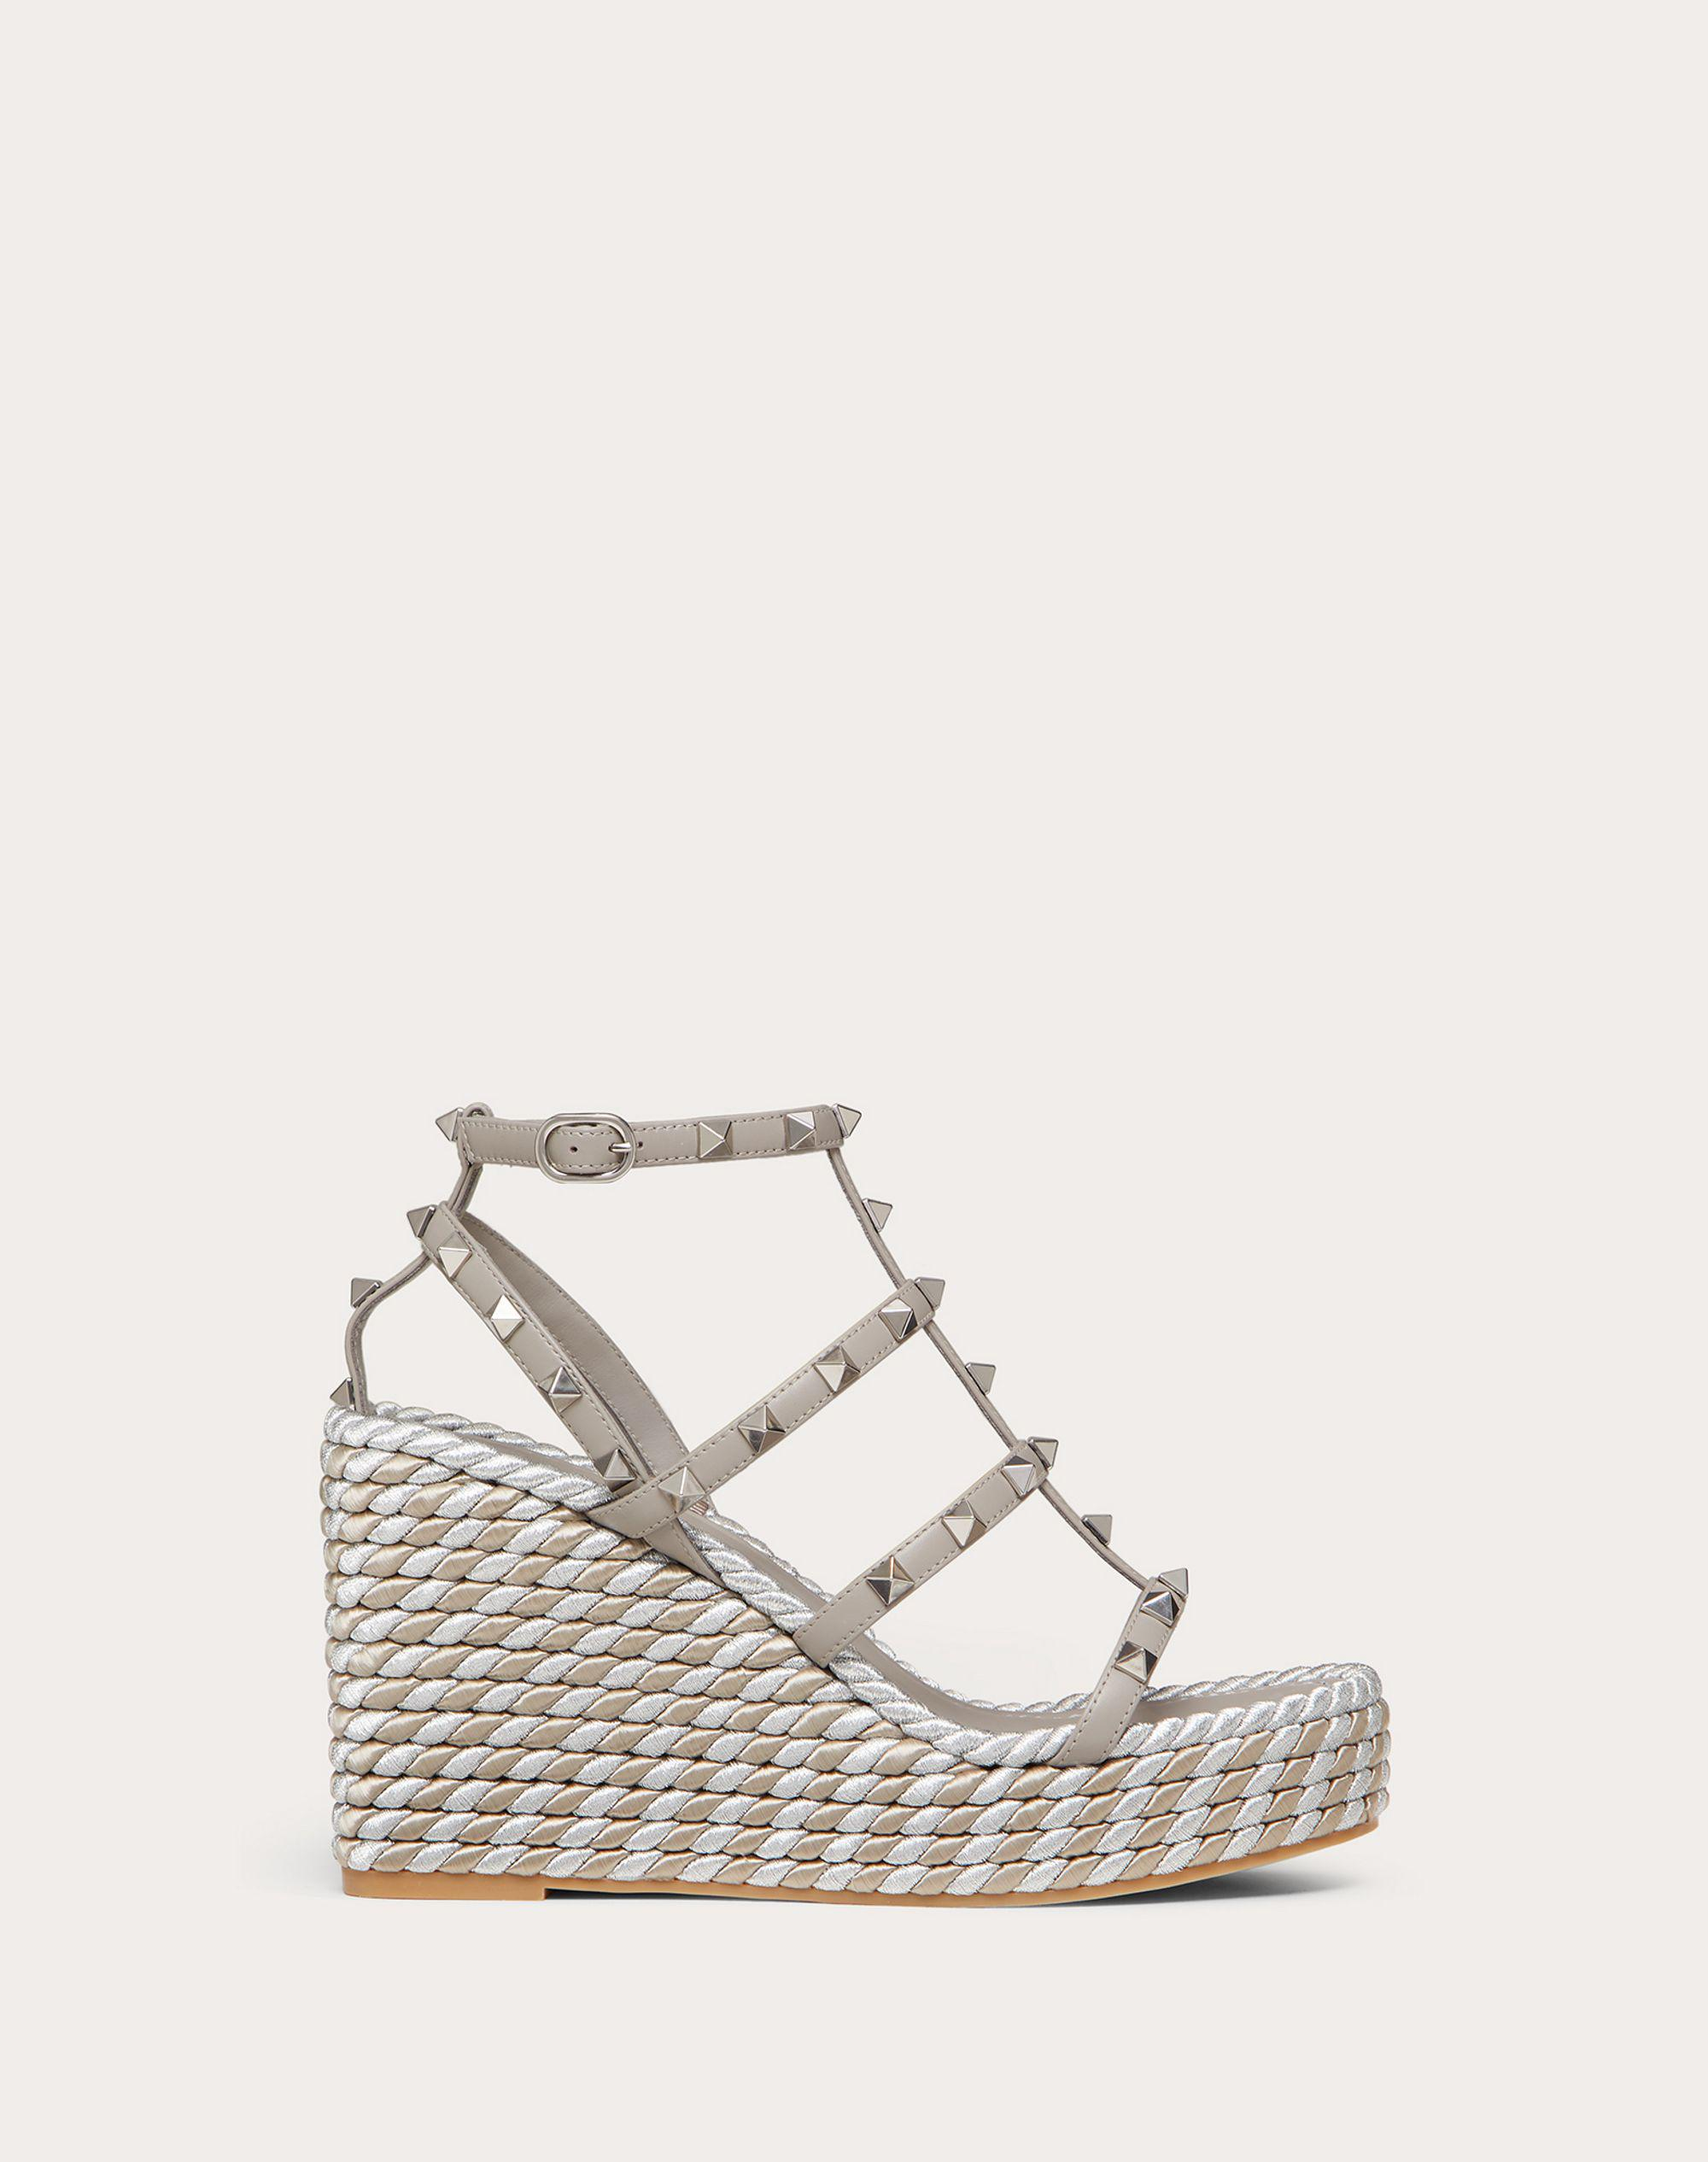 Rockstud Calfskin Wedge Sandal with Straps 95 mm / 3.8 in.